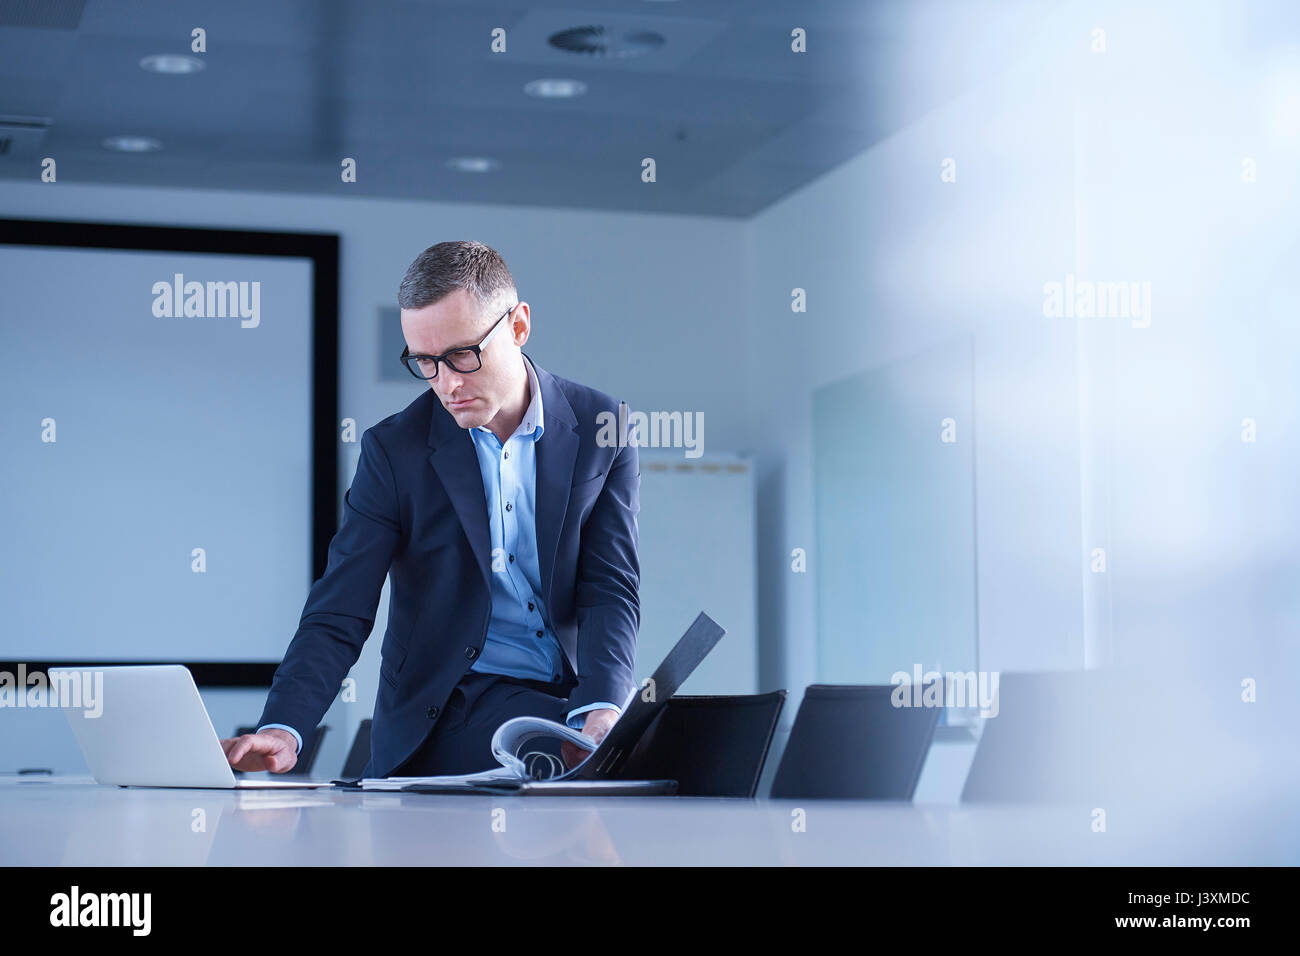 Businessman typing on laptop at boardroom table - Stock Image